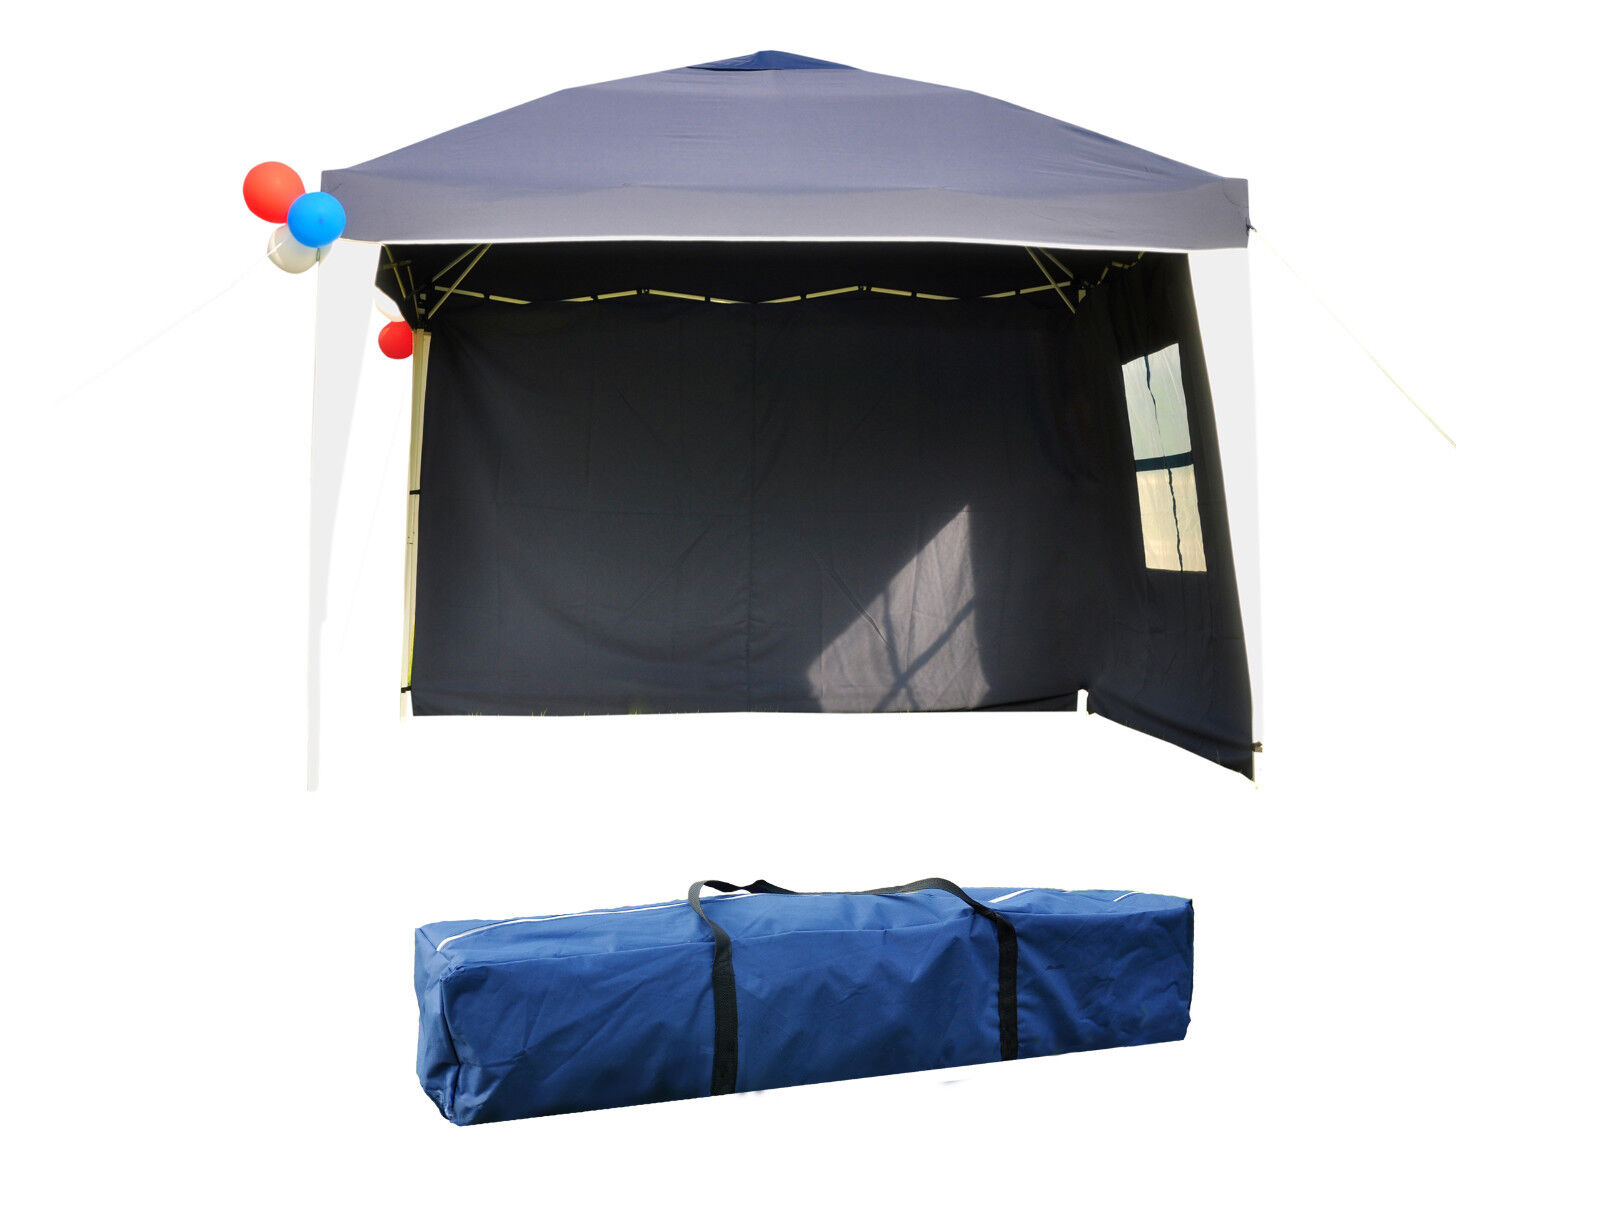 10'x10' EZ Pop Up Tent Canopy Heavy Duty Outdoor Party Tent